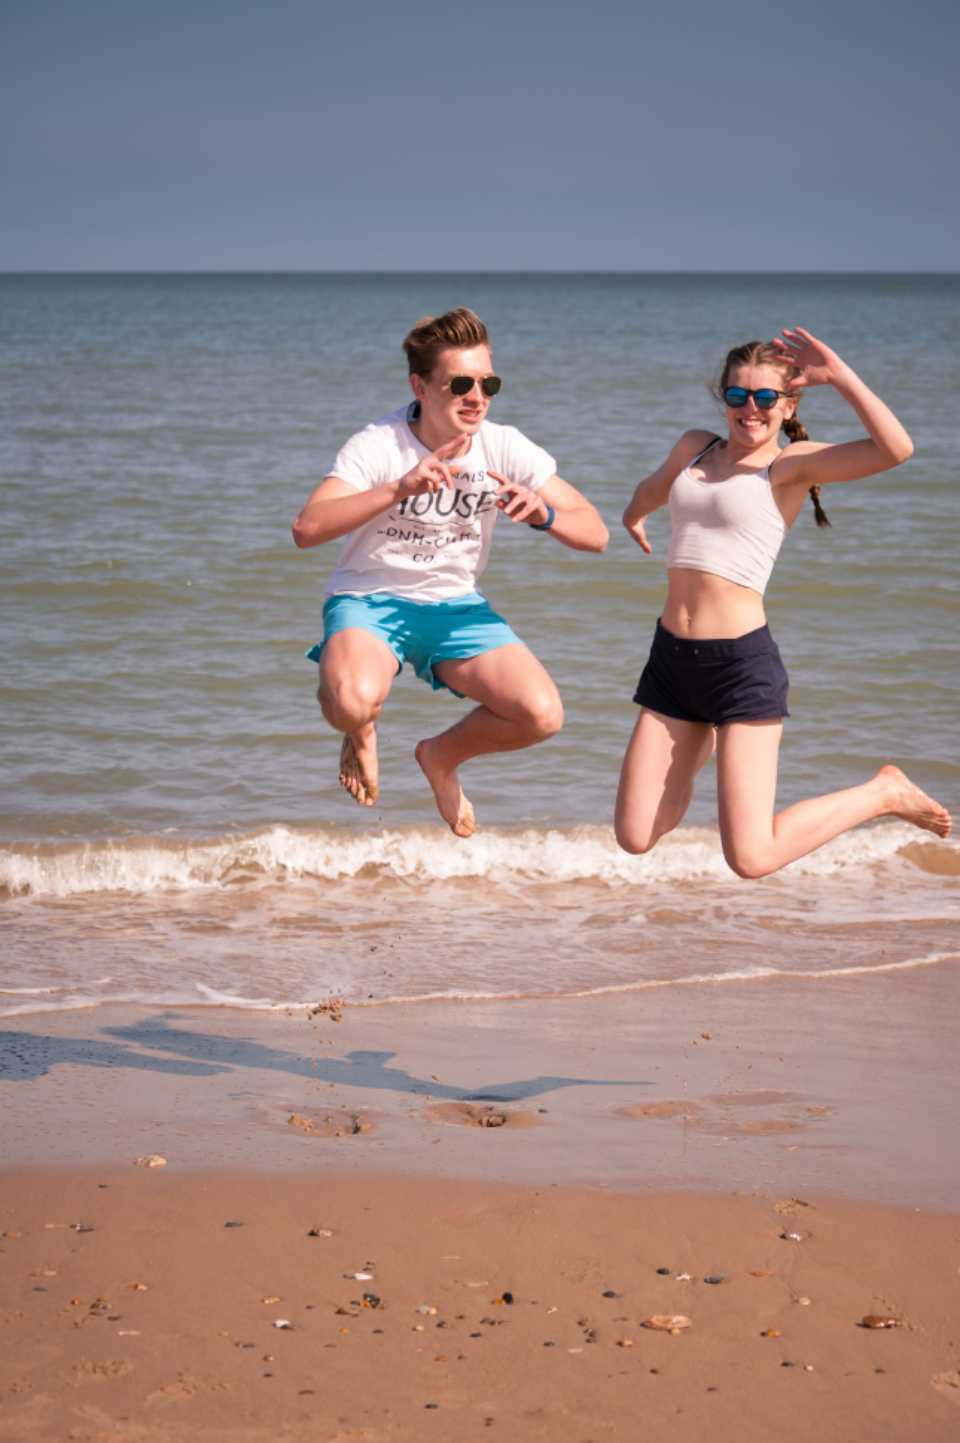 kids jumping at beach, teenagers, family vacation